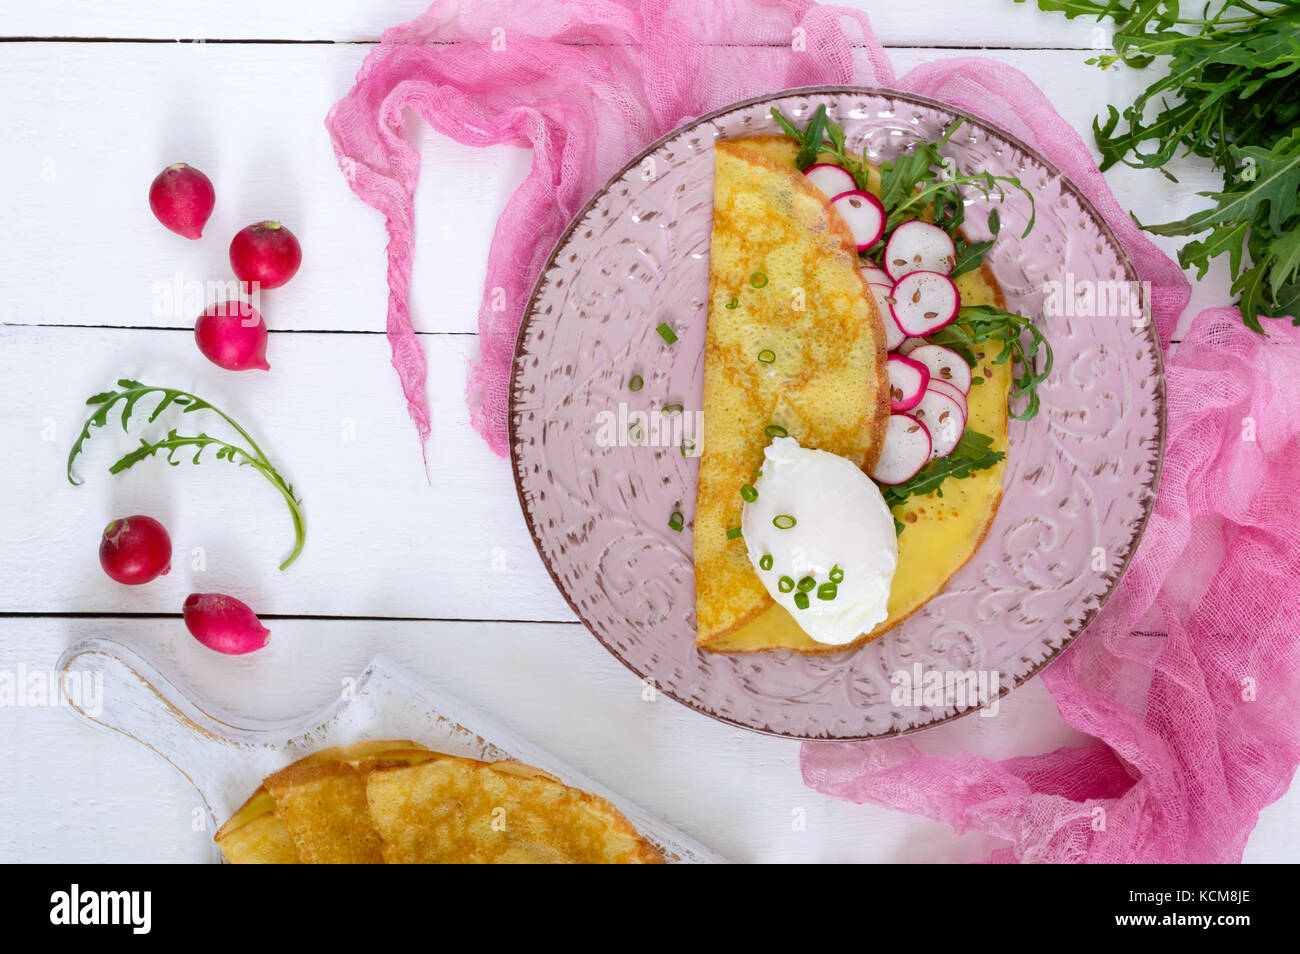 Useful french breakfast: radish salad and arugula, egg poached on a thin crape on a ceramic plate on a white wooden - Stock Image